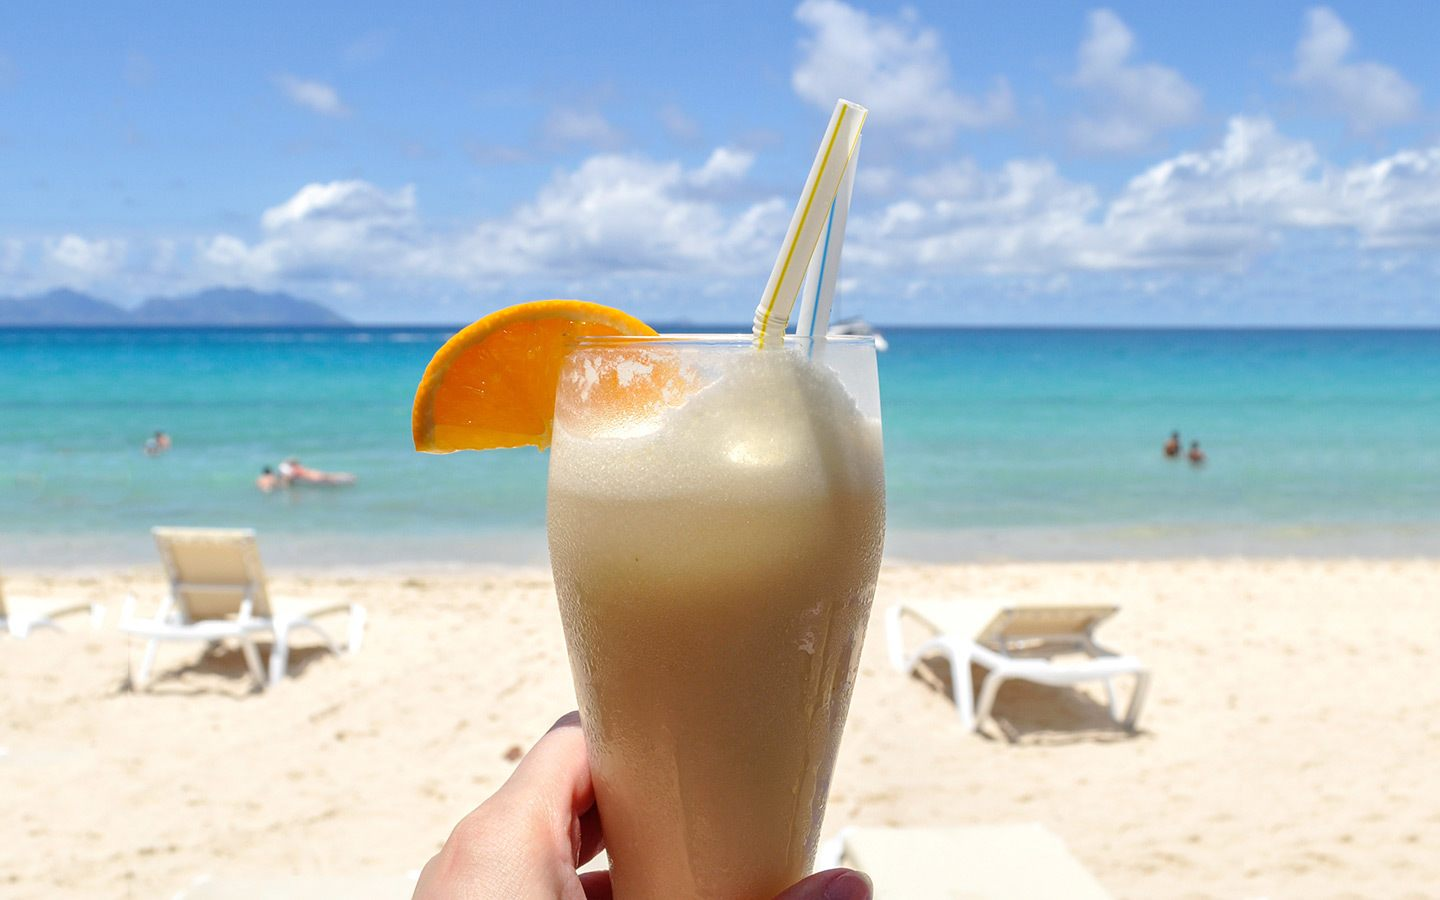 Cocktail on the beach while reading books for travellers